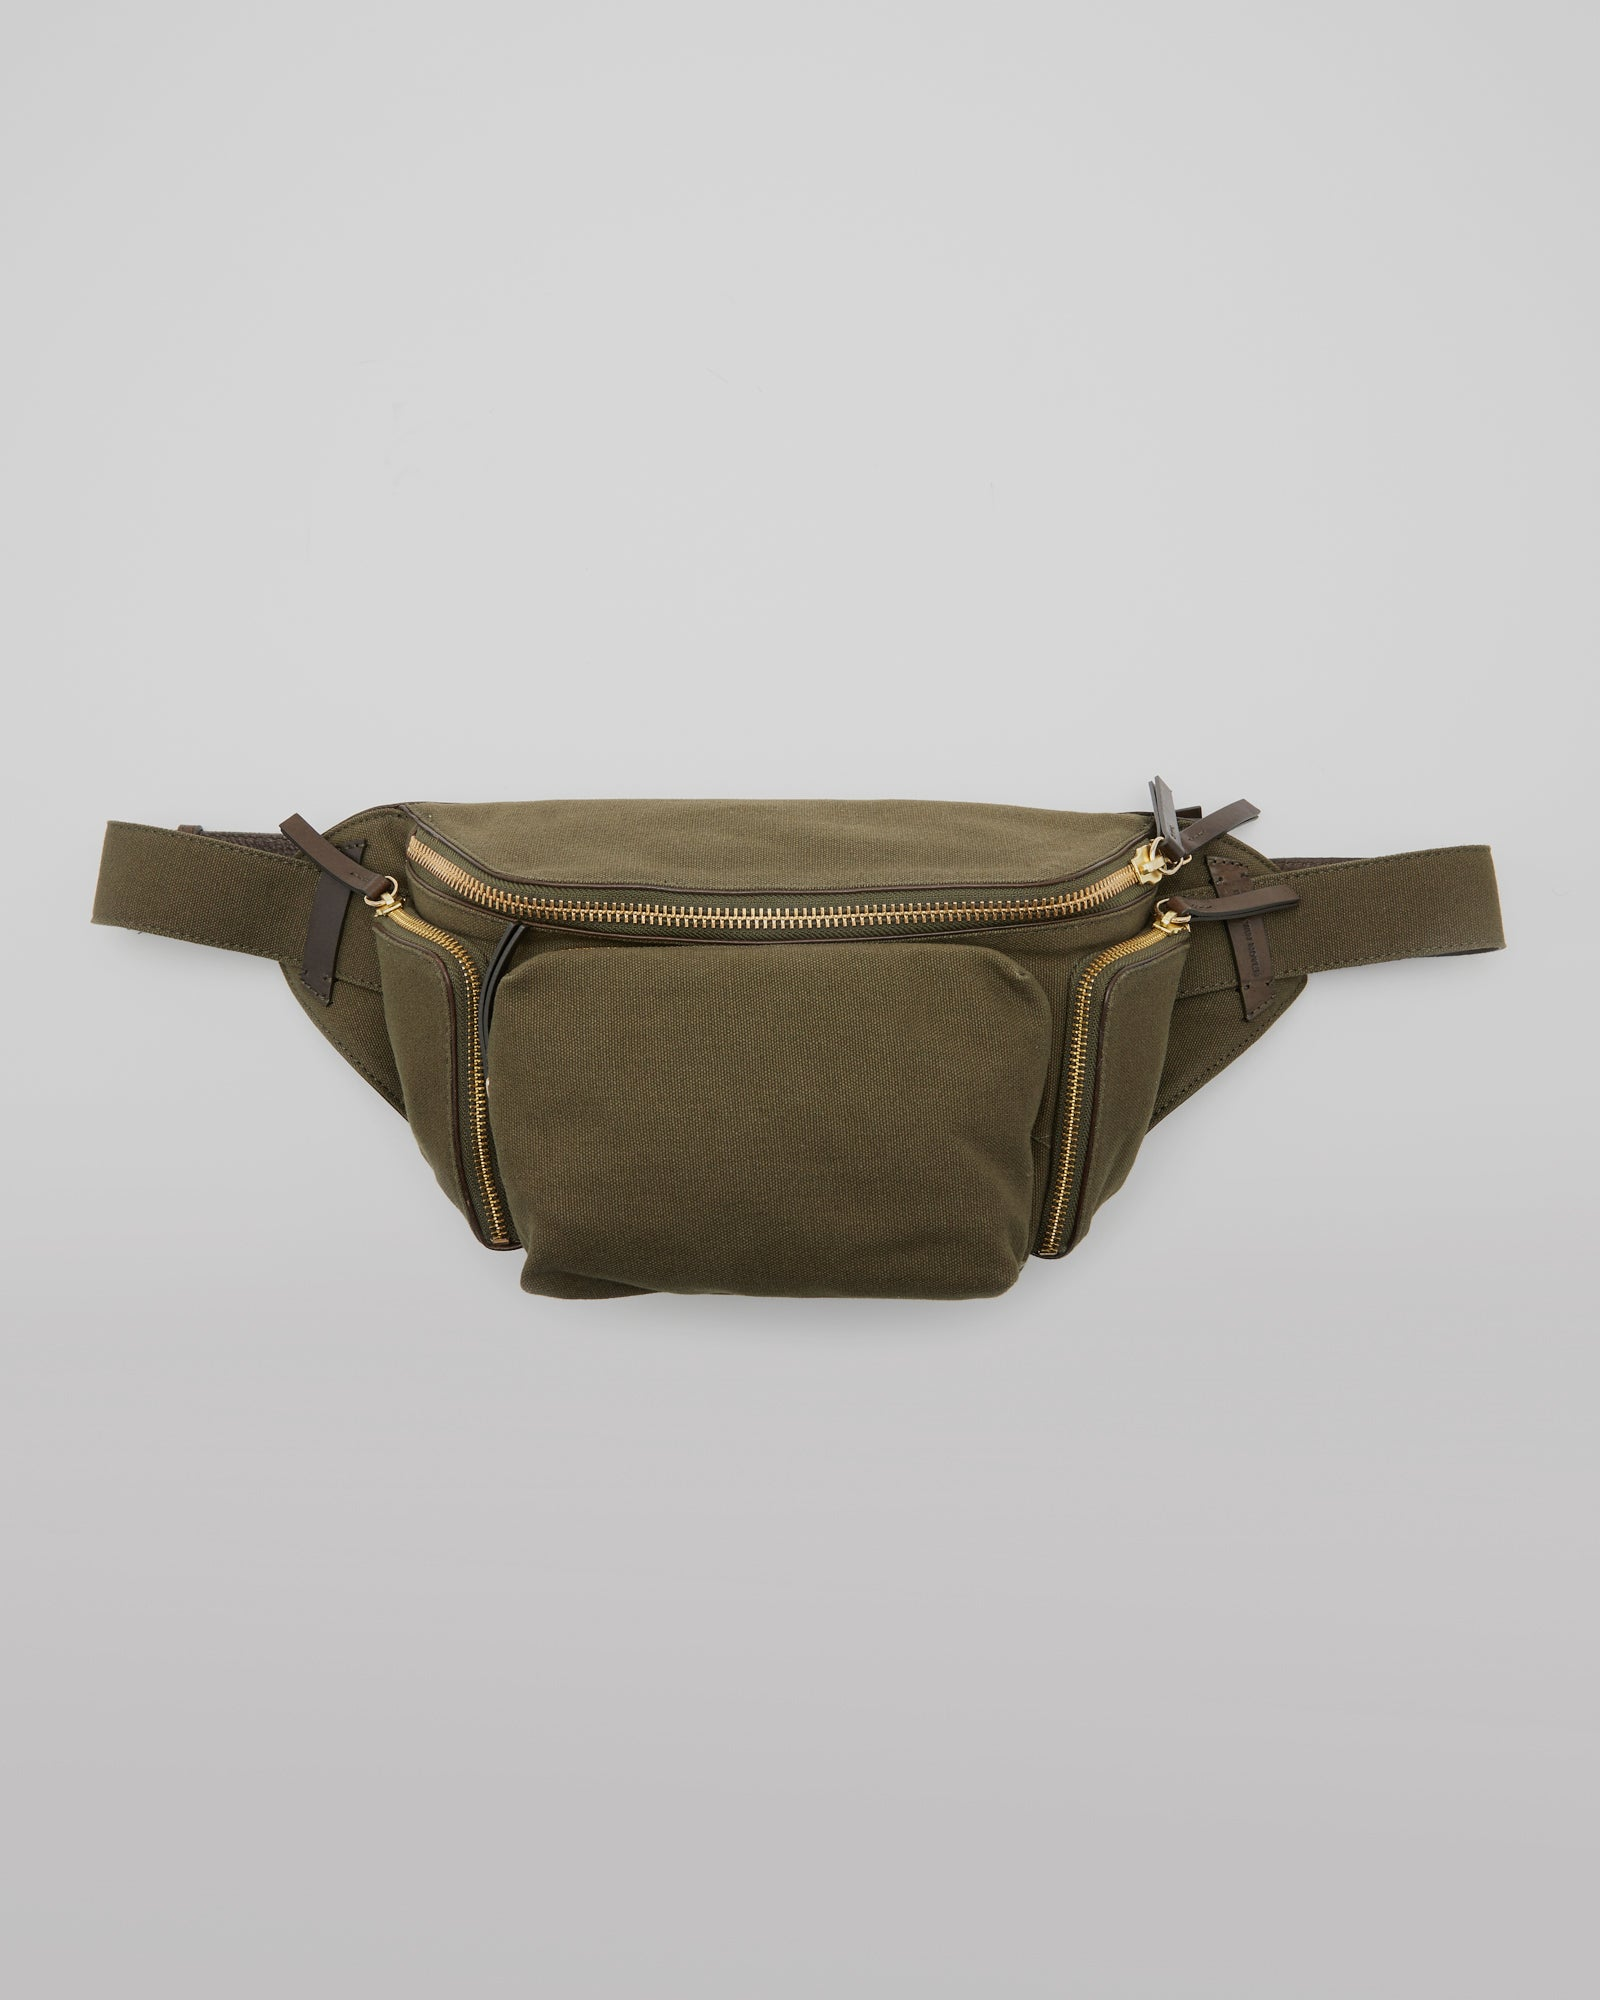 BM27/306 Bag in Kaki